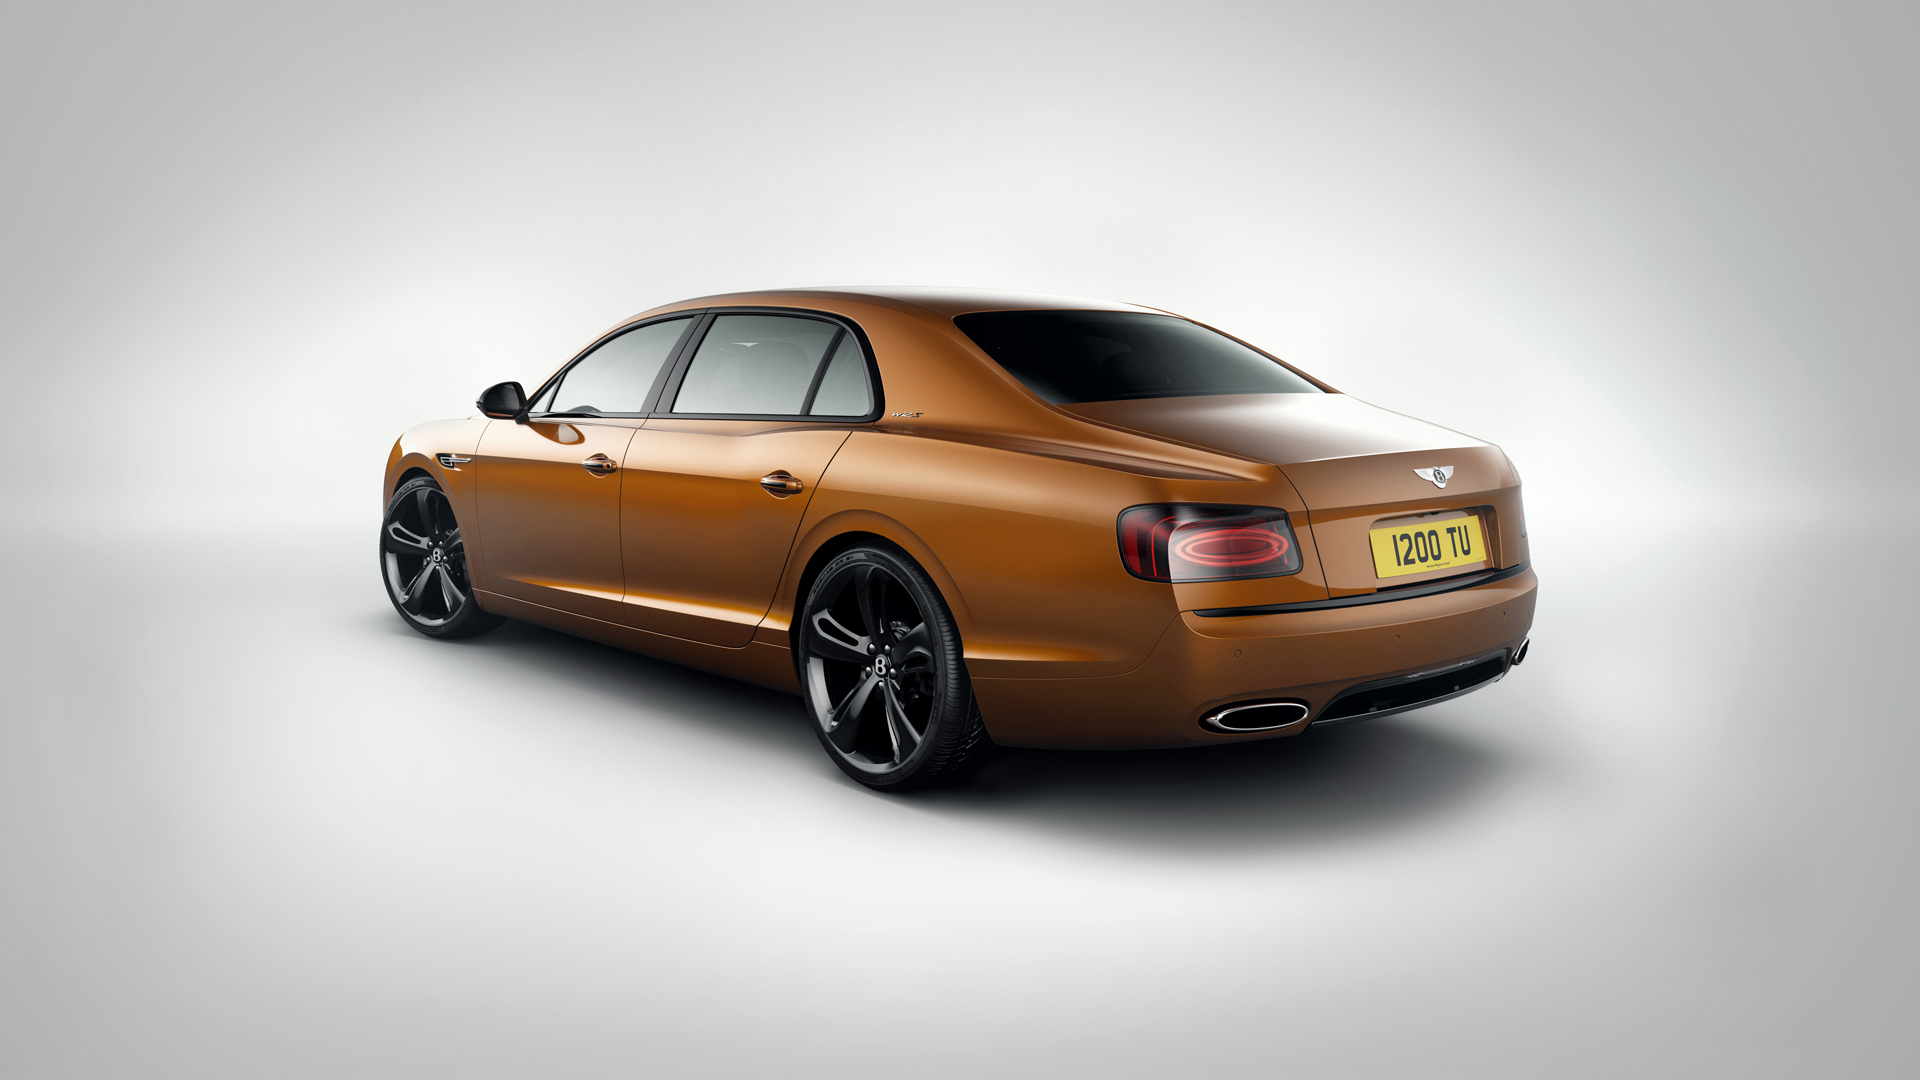 bentley-flying-spur-w12s-04-1